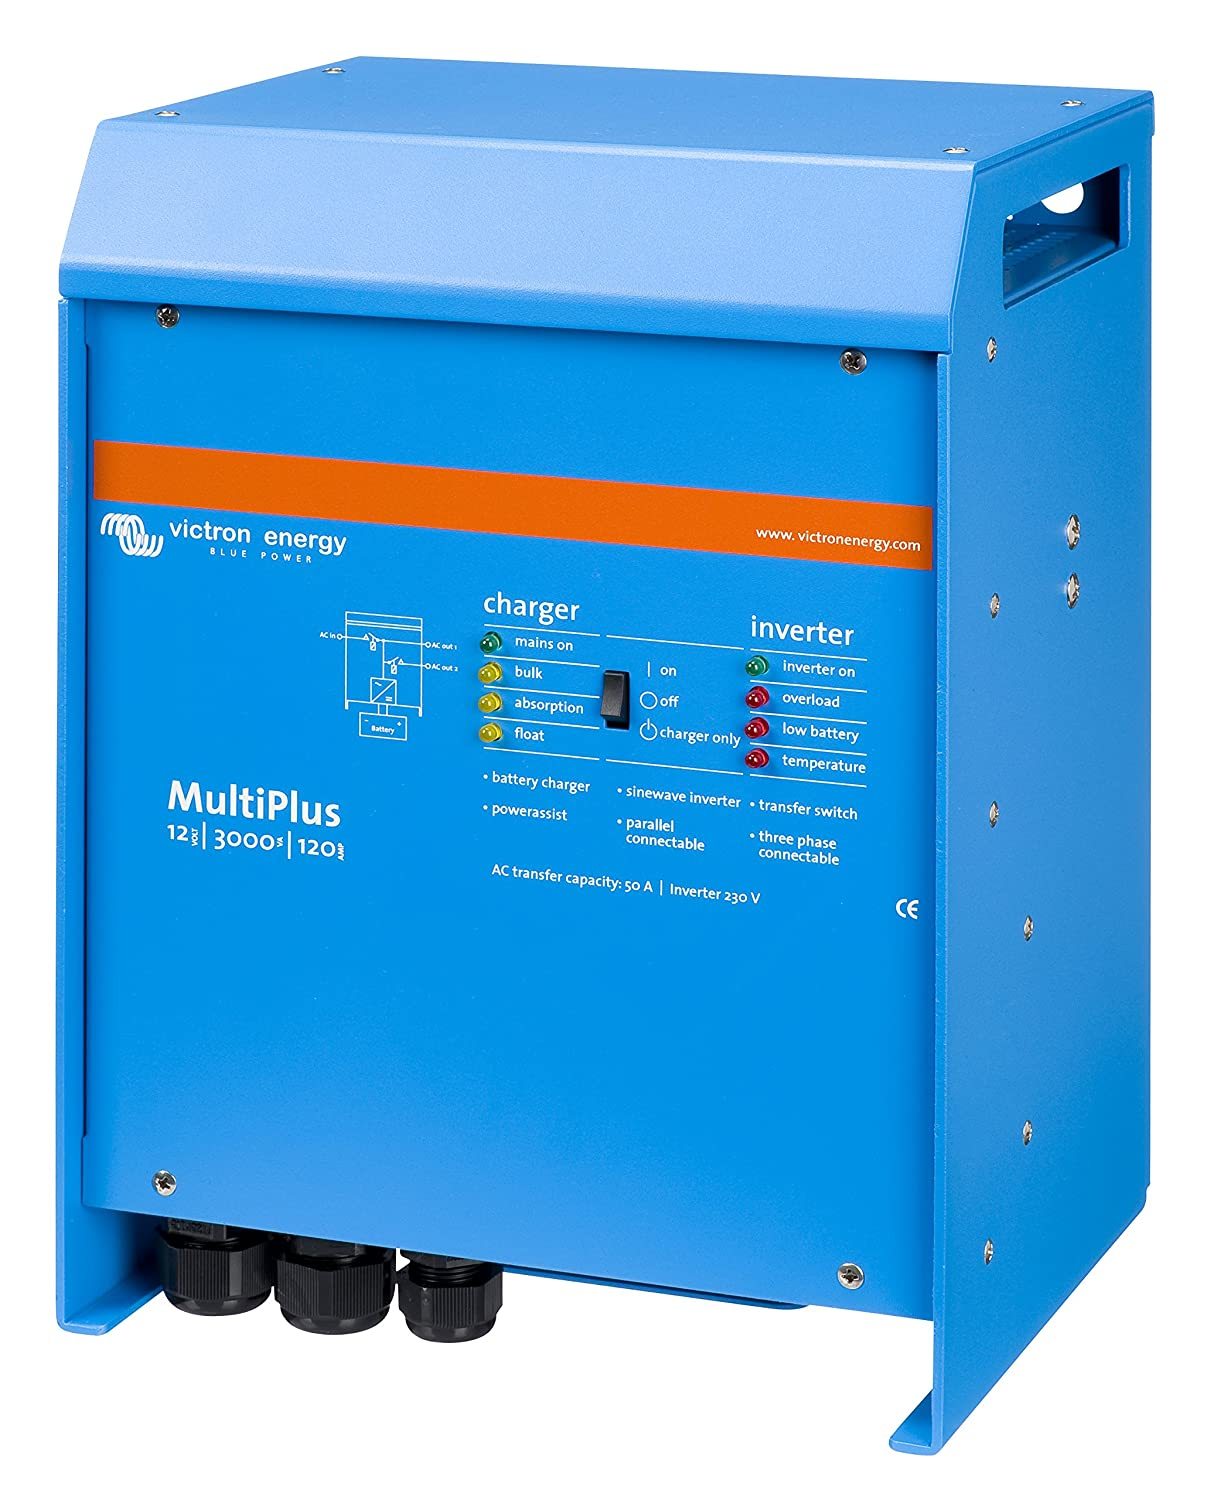 MultiPlus 3000 / 12v – Victron Energy Our inverter/charger on our bus is the Victron MultiPlus – we love the power assist mode, and it's programmable to our lithium ion batteries.